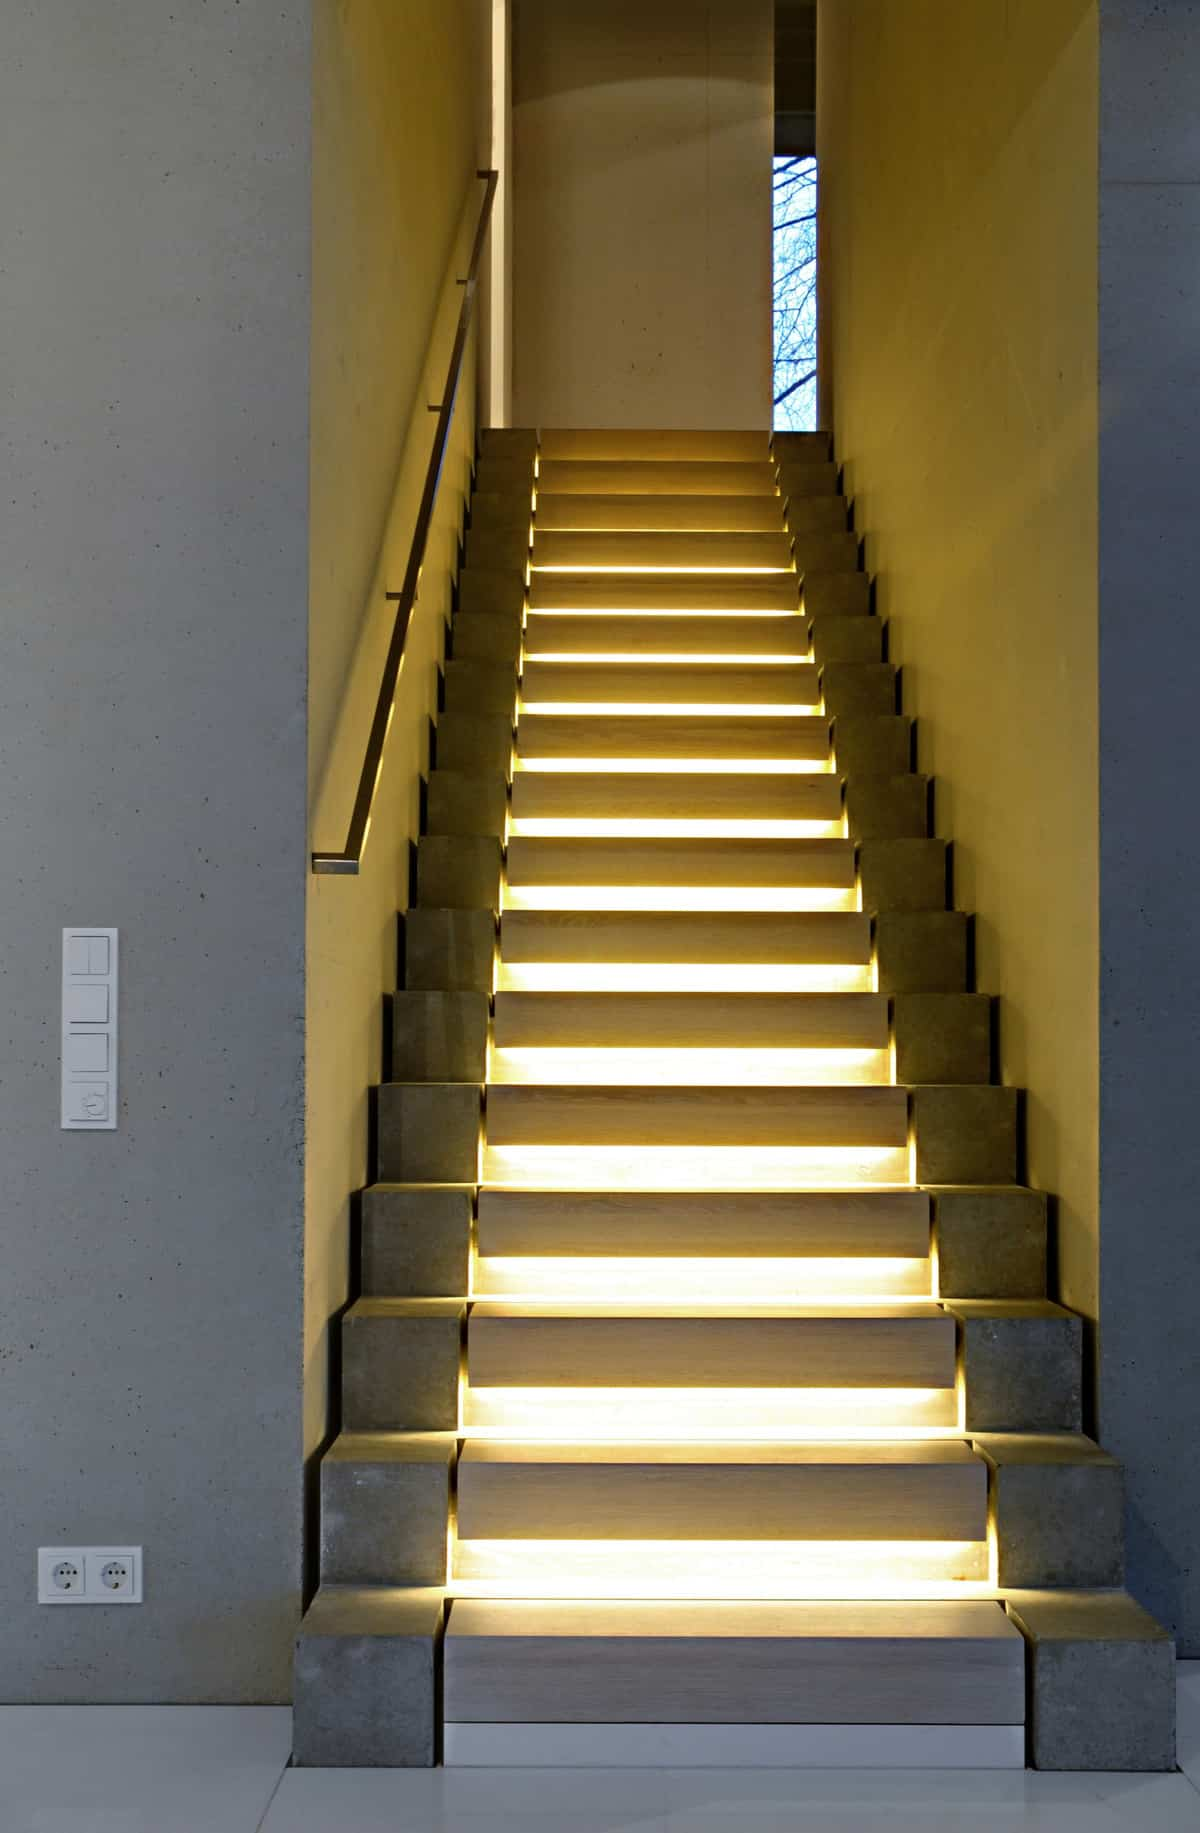 Stairway Designs 15 Geometric Staircase Designs